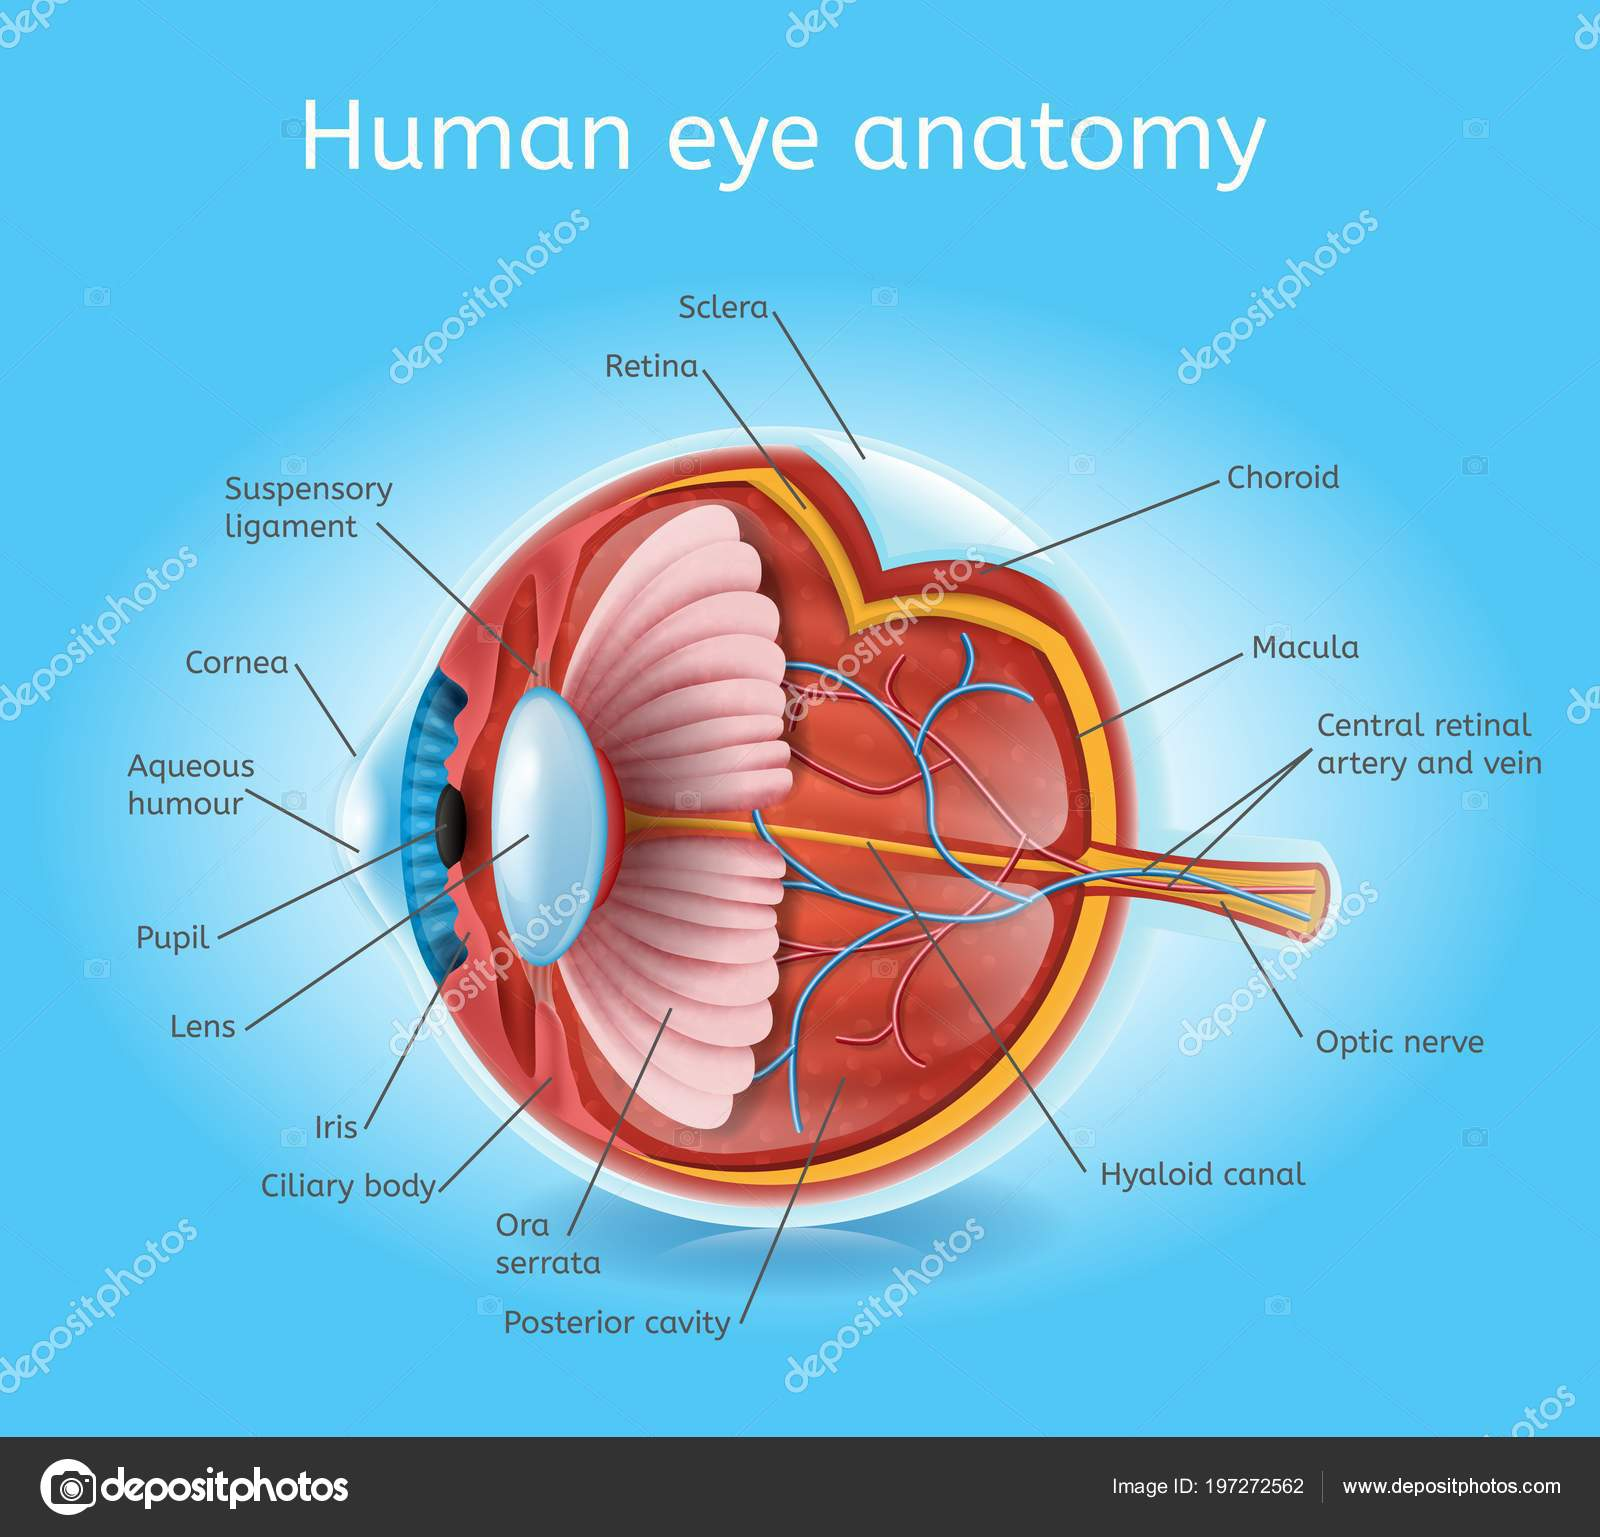 Human Eye Anatomy Detailed Cross Section View Vector Scheme Layers